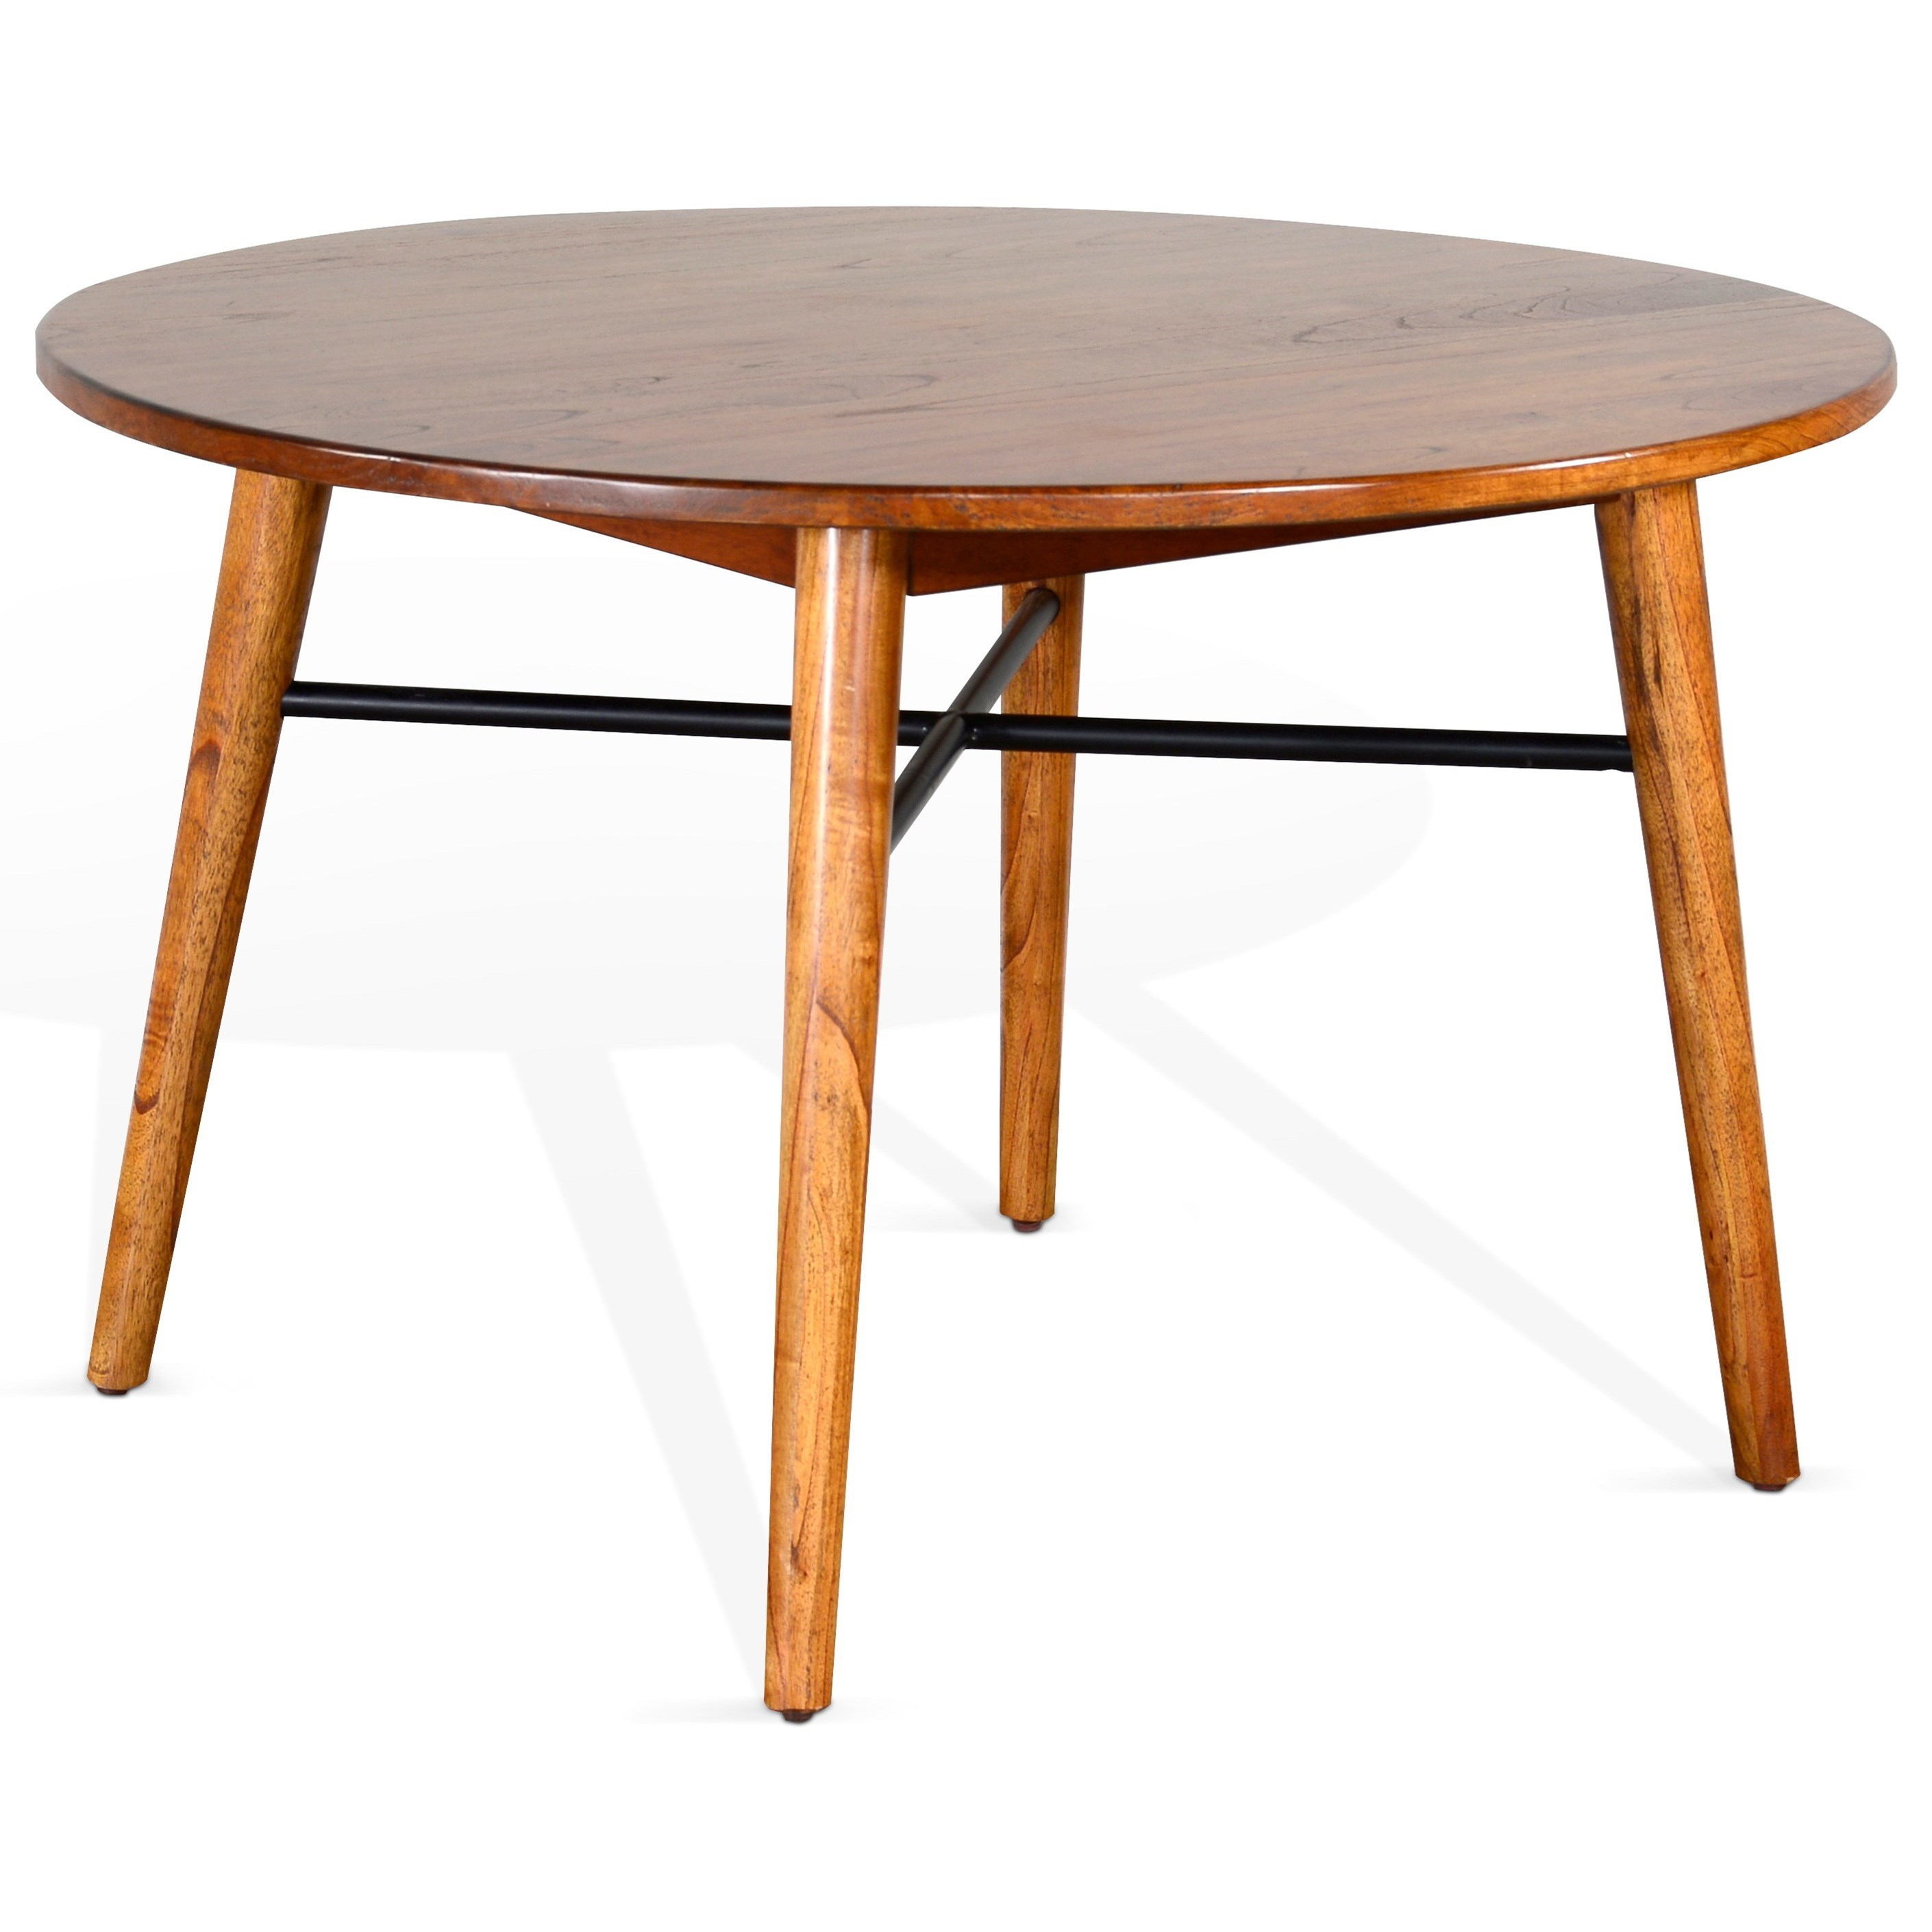 American Modern Round Table by Sunny Designs at Home Furnishings Direct